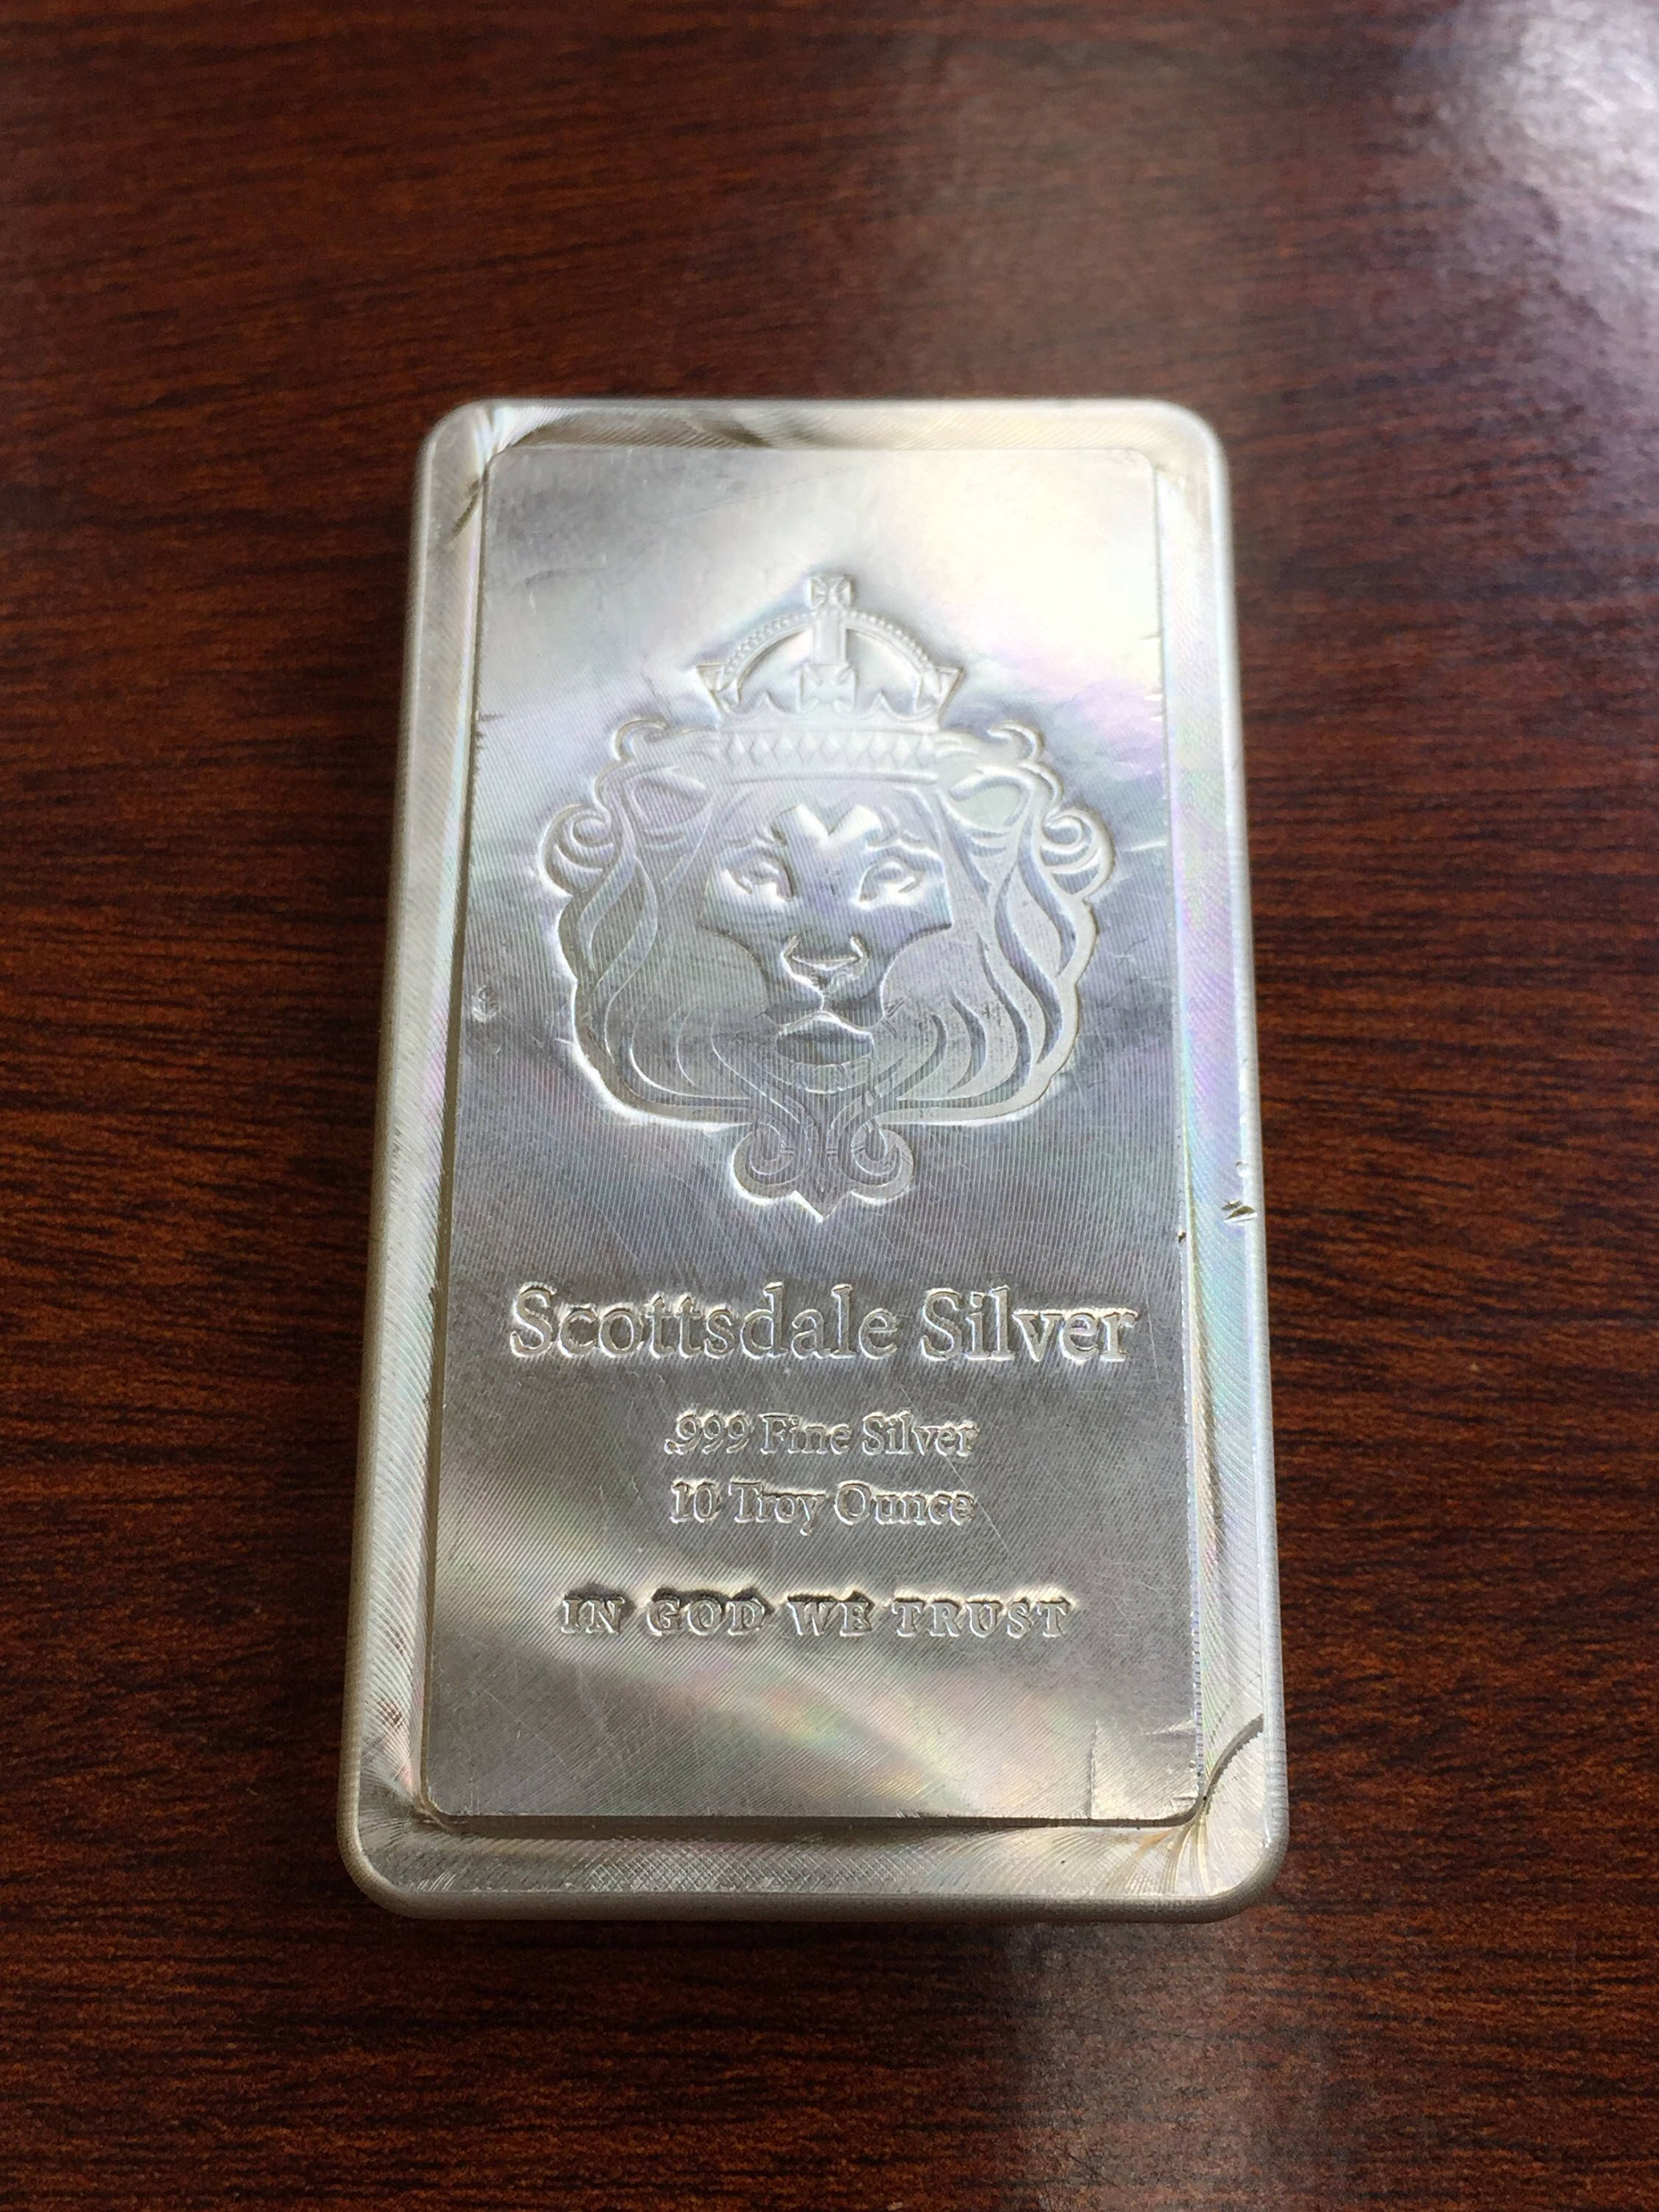 10 Oz Scottsdale Lion Stacker Silver Bar 999 Silver Bullion By Coinlovers On Etsy Https Www Etsy Com Listing 519560342 Silver Bullion Silver Bars Silver Art